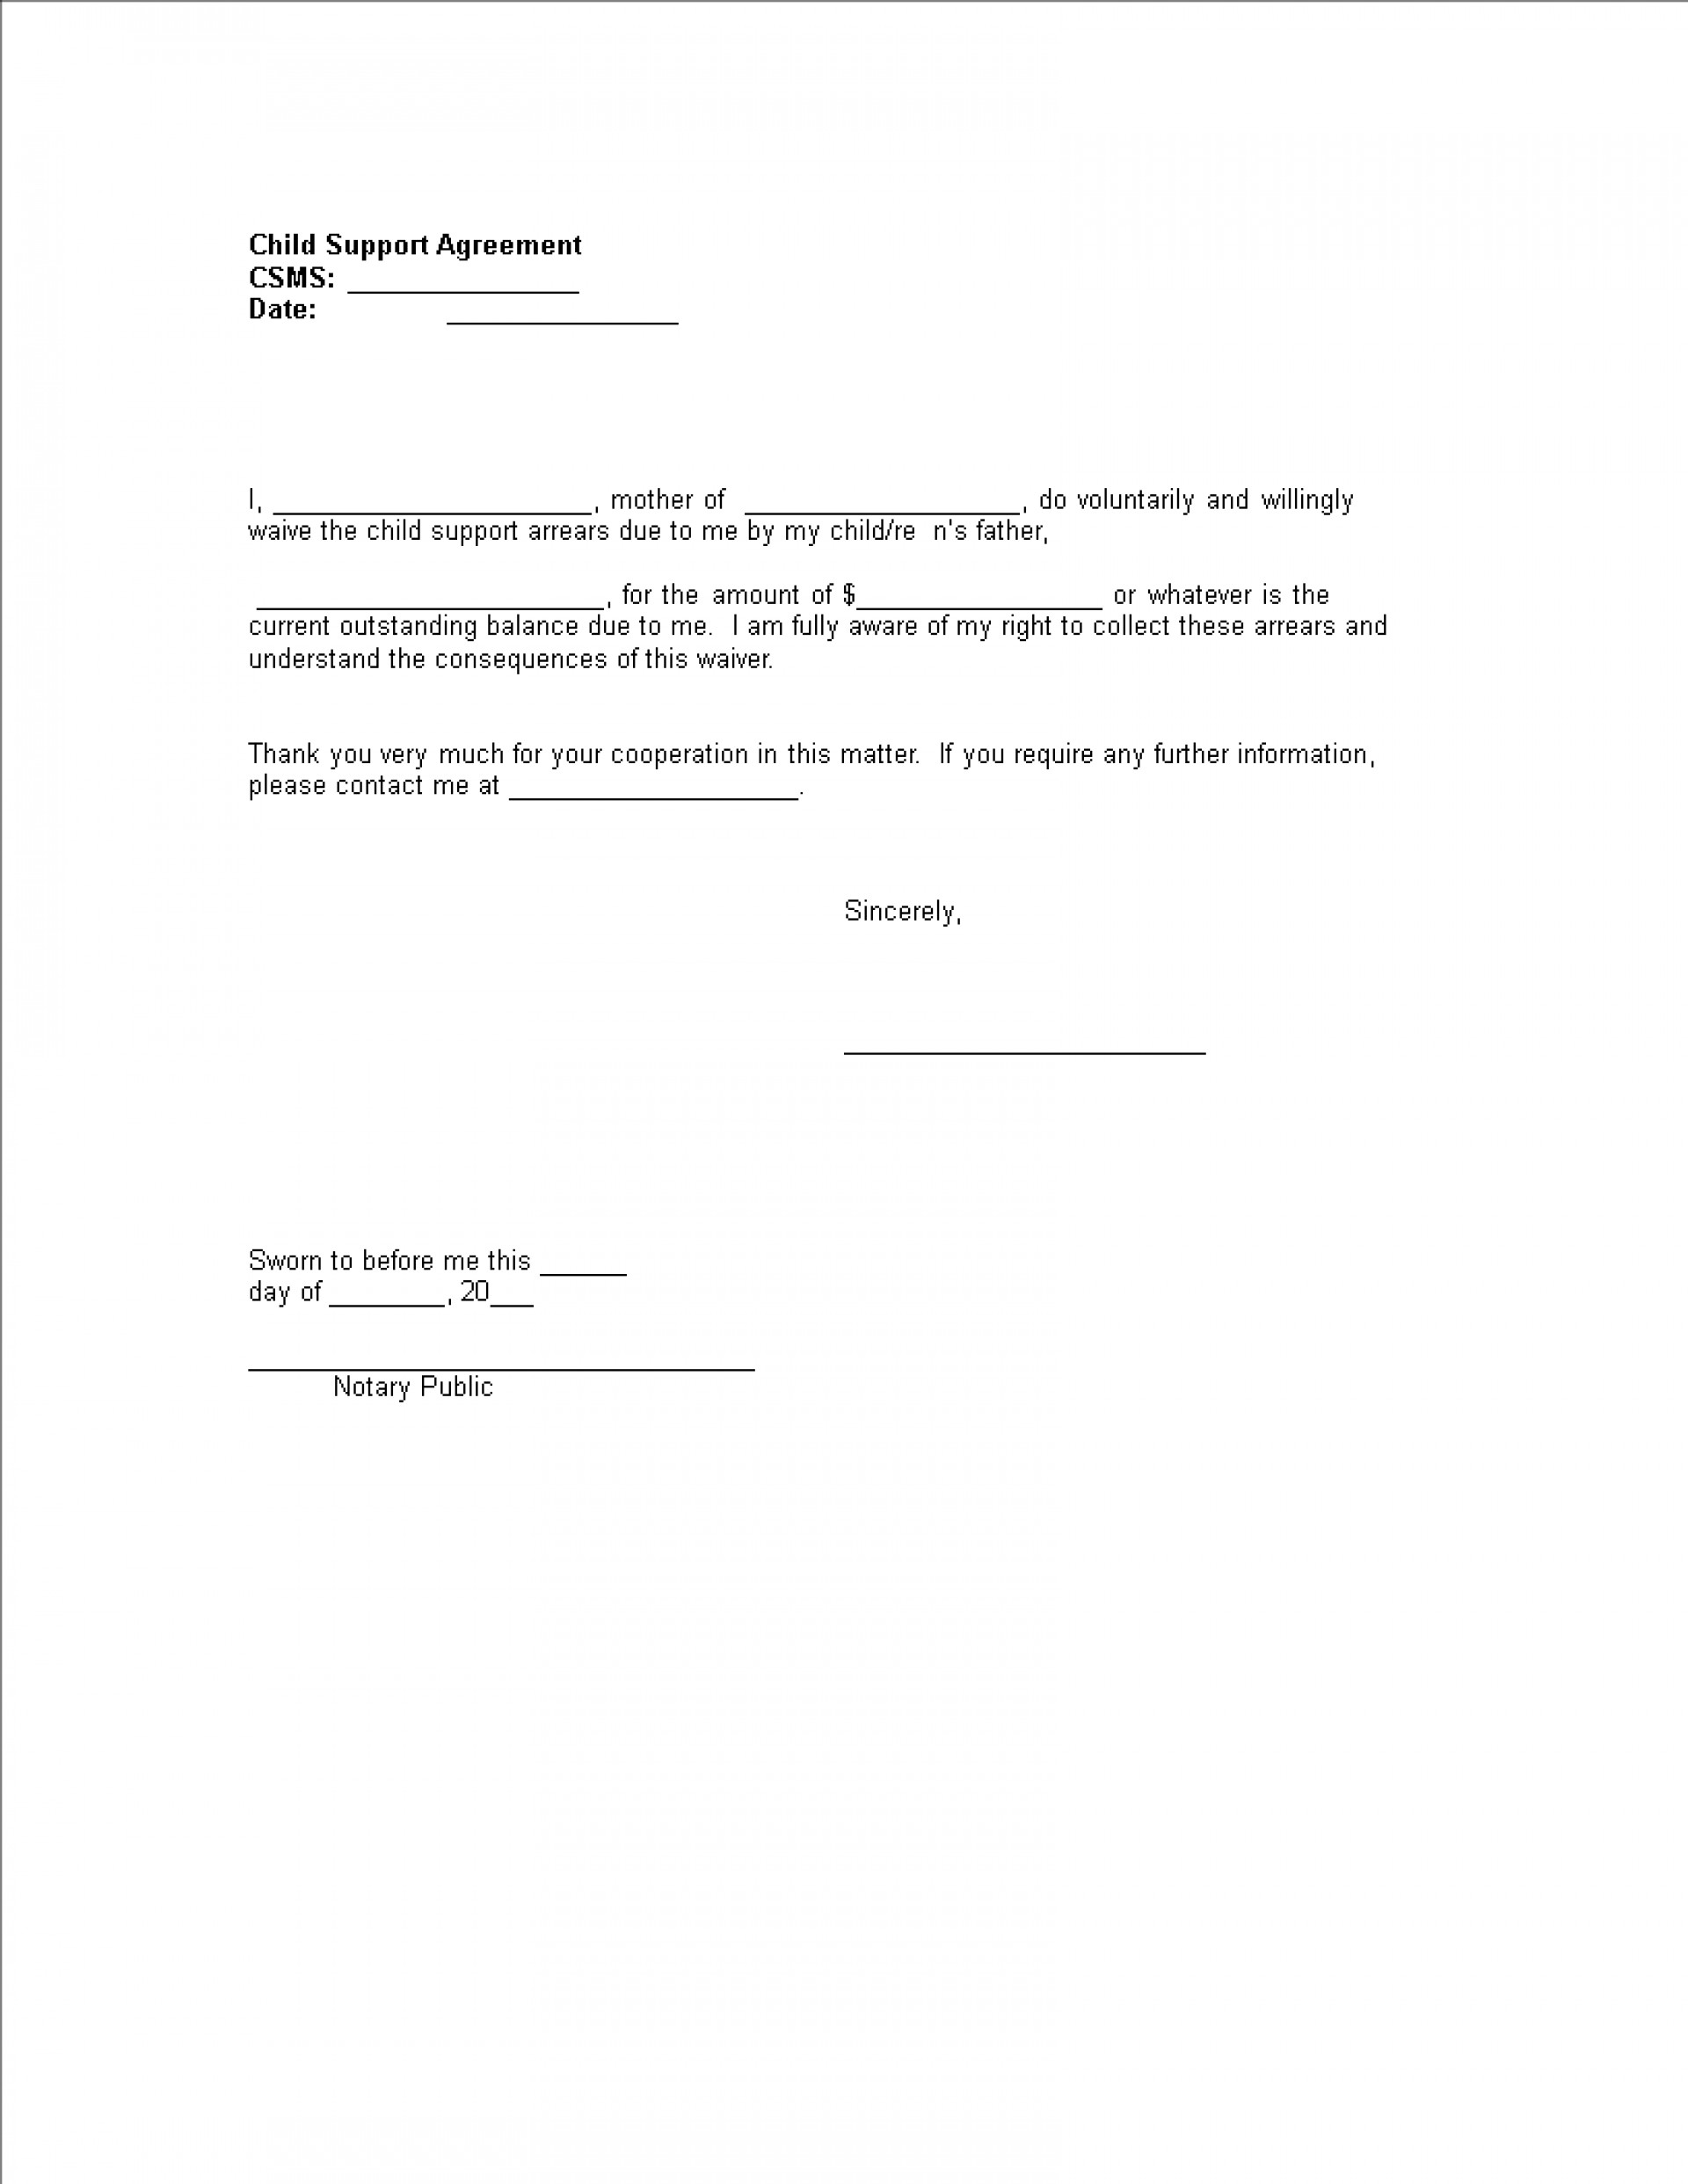 Voluntary Child Support Agreement Template